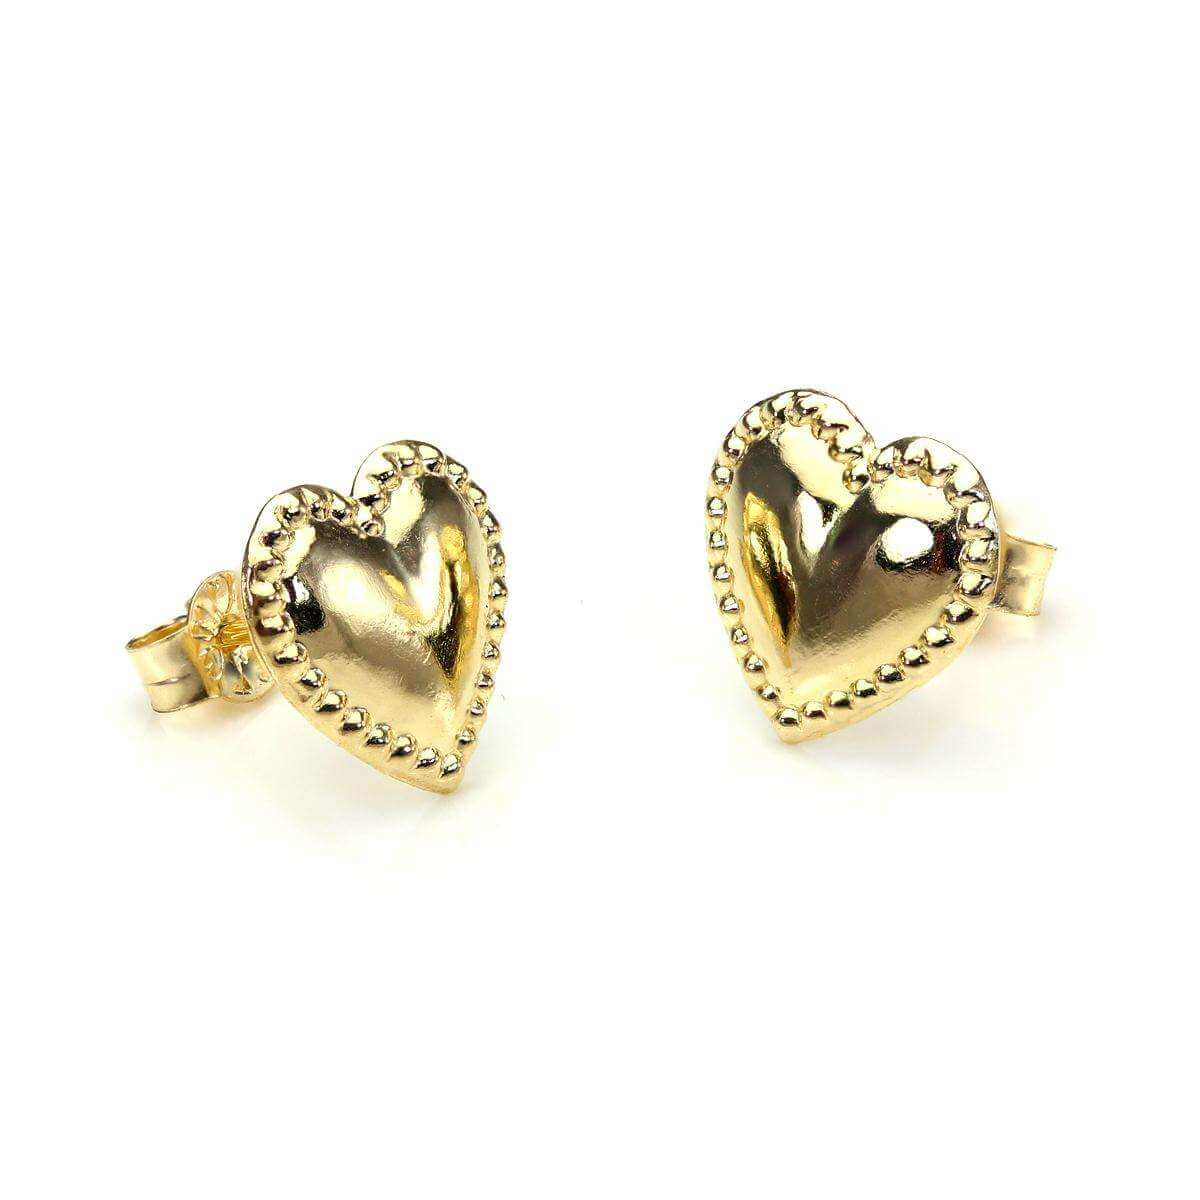 9ct Yellow Gold Beaded Heart Stud Earrings